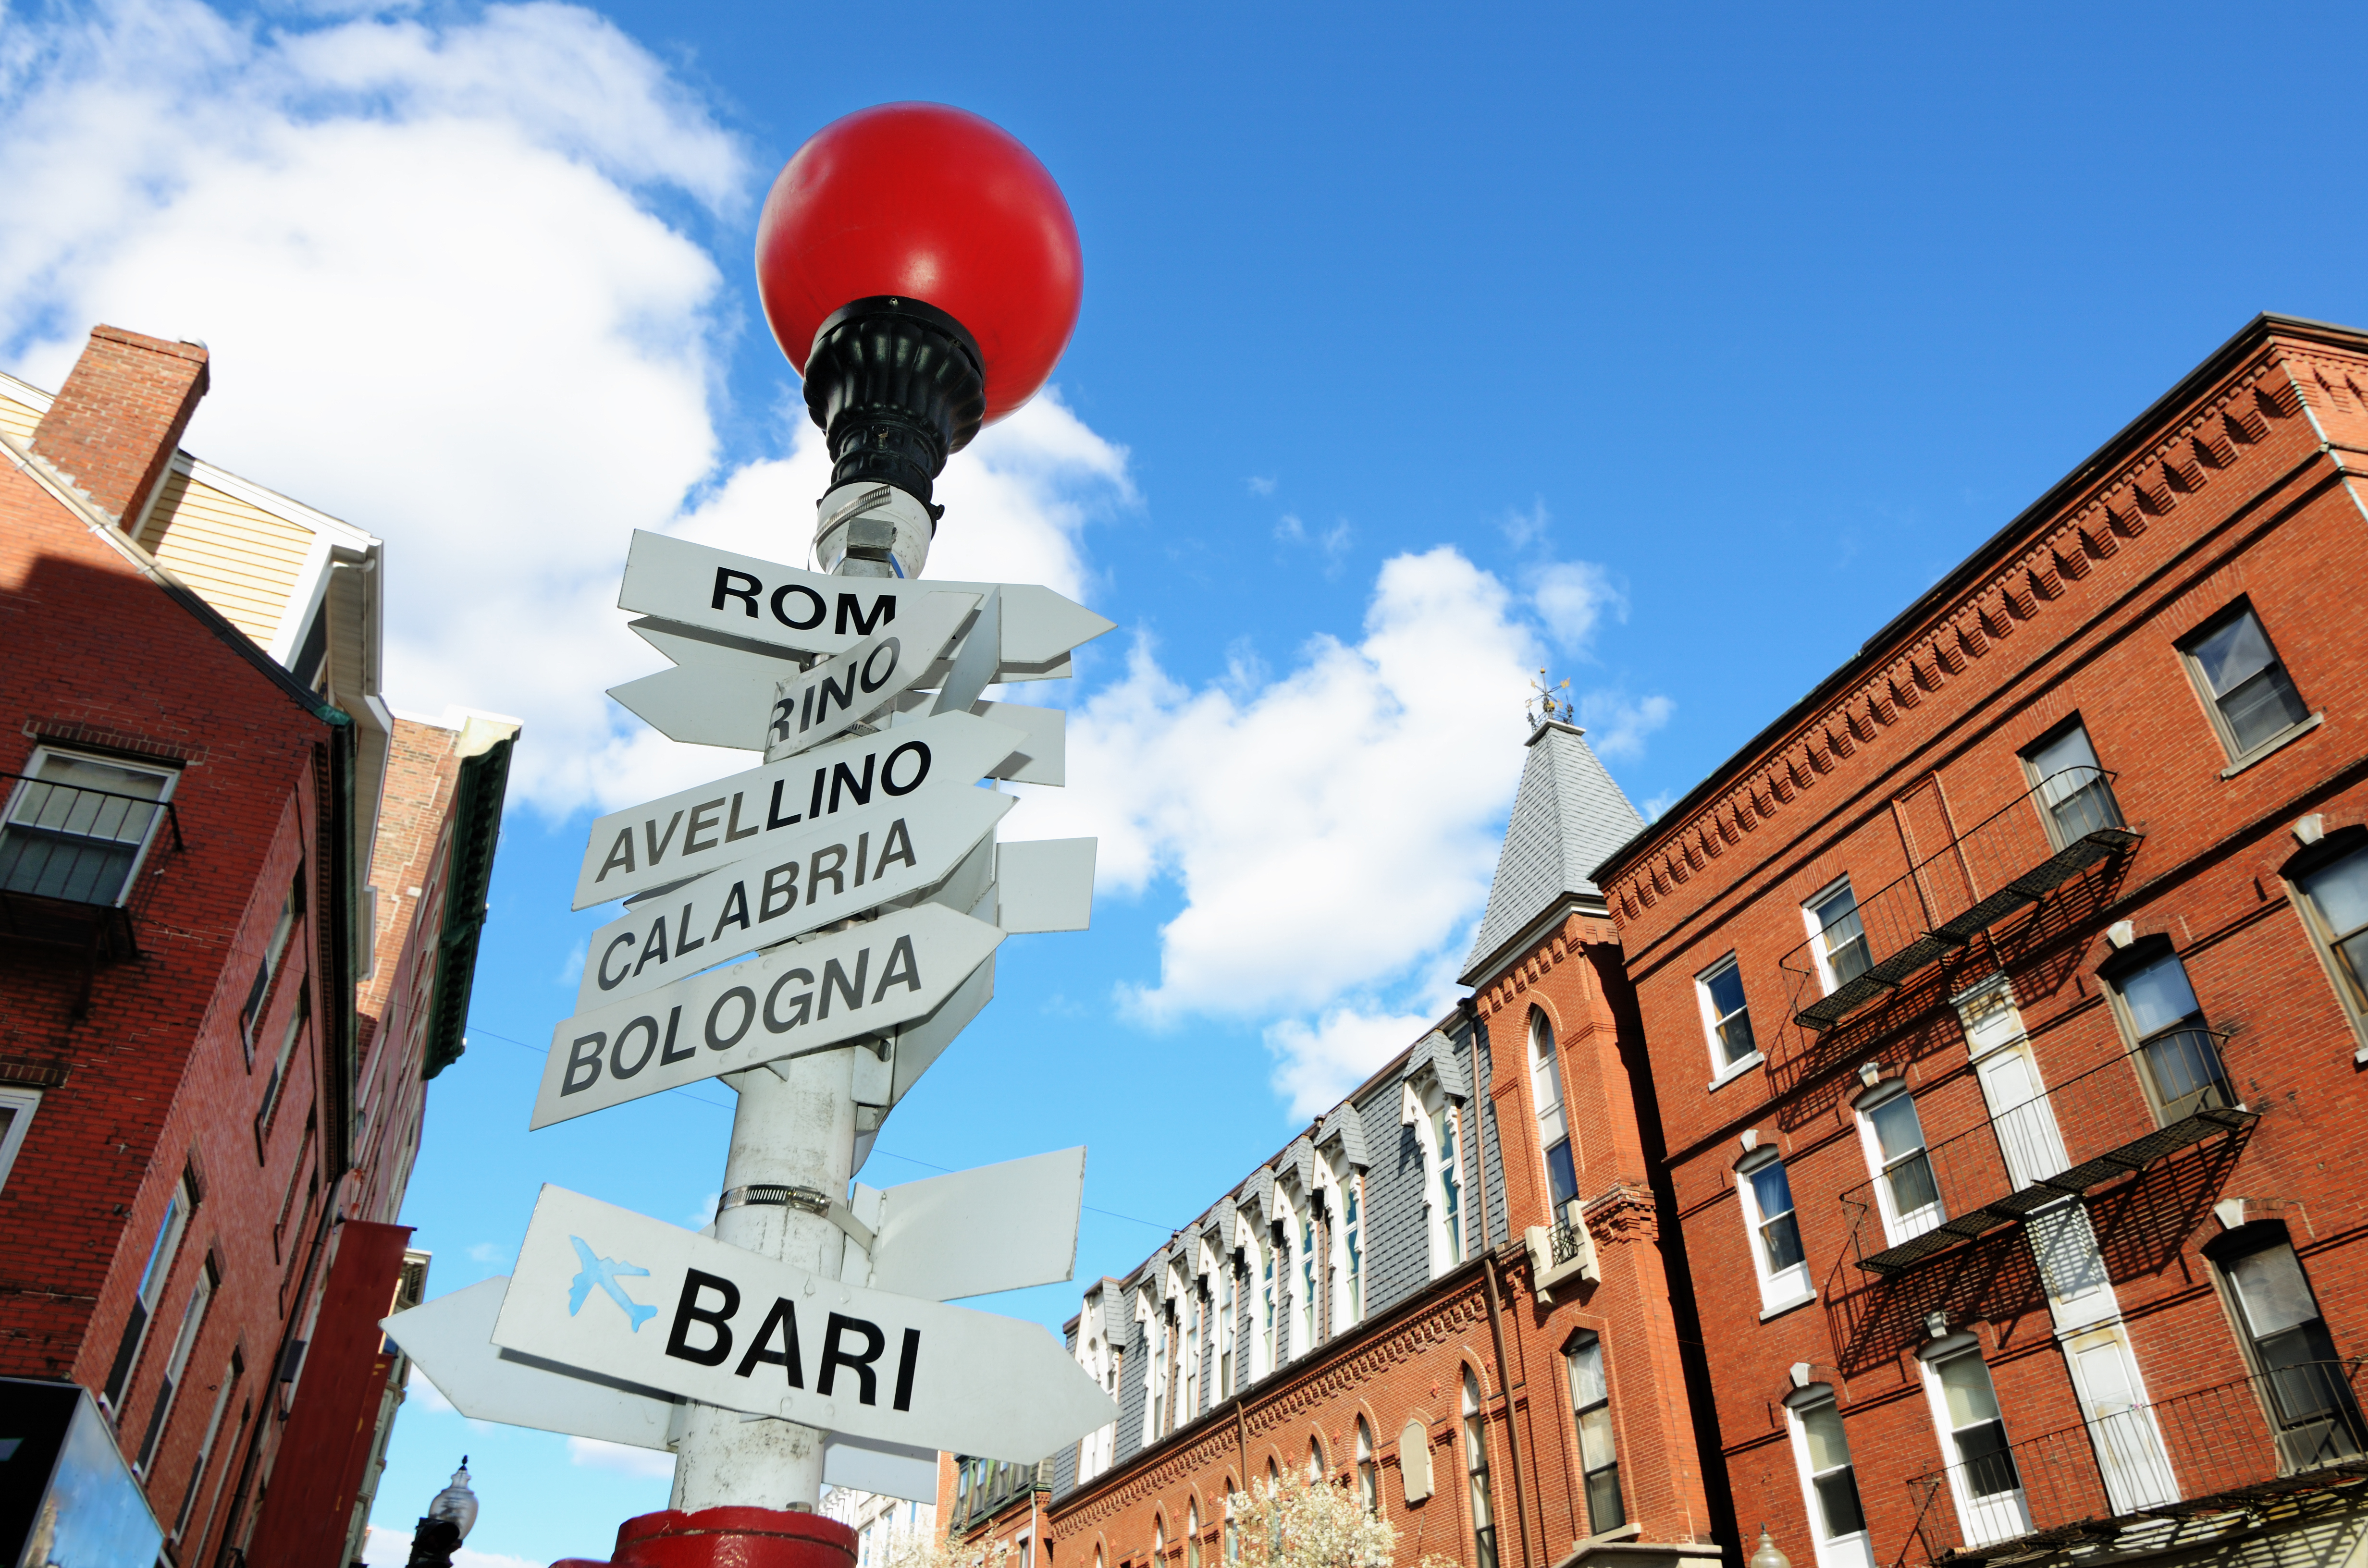 Street signs in Boston's North End.